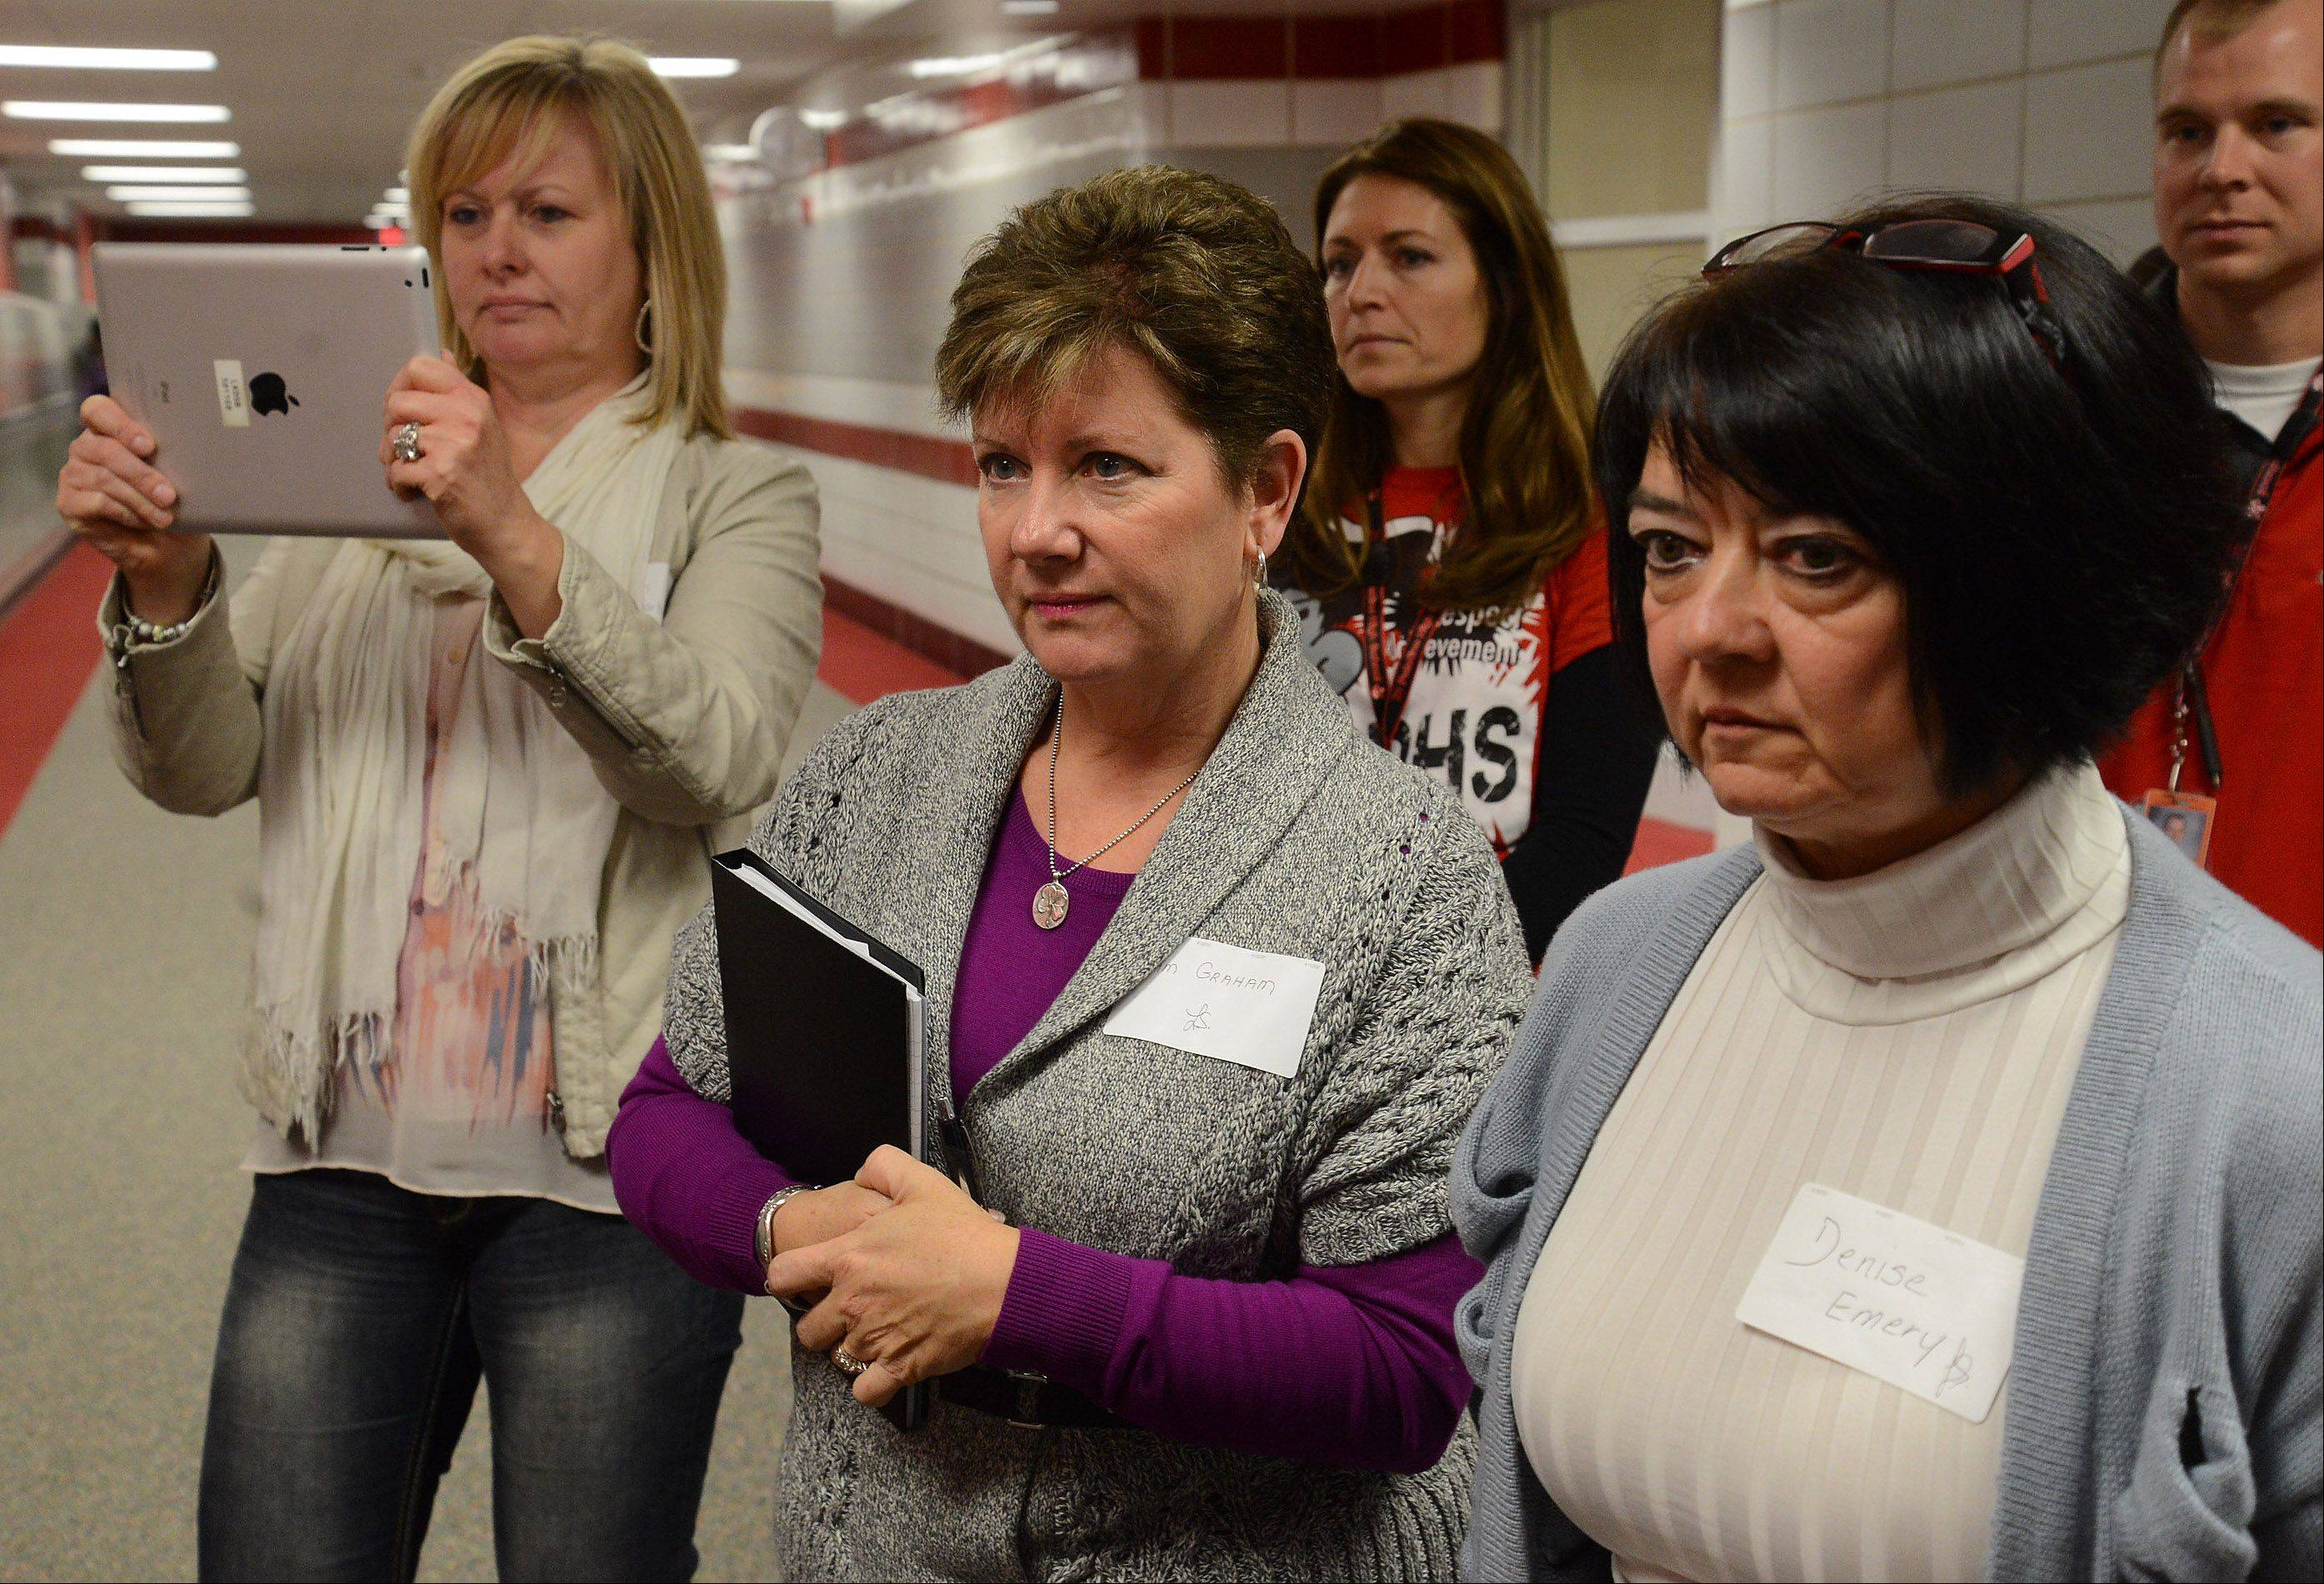 Visiting educators from Canada from left, Shelley Martsch-Litt, Pam Graham and Denise Emery are given a tour by Palatine High School principal Gary Steiger to learn about the school's Commit to the Pirate program.